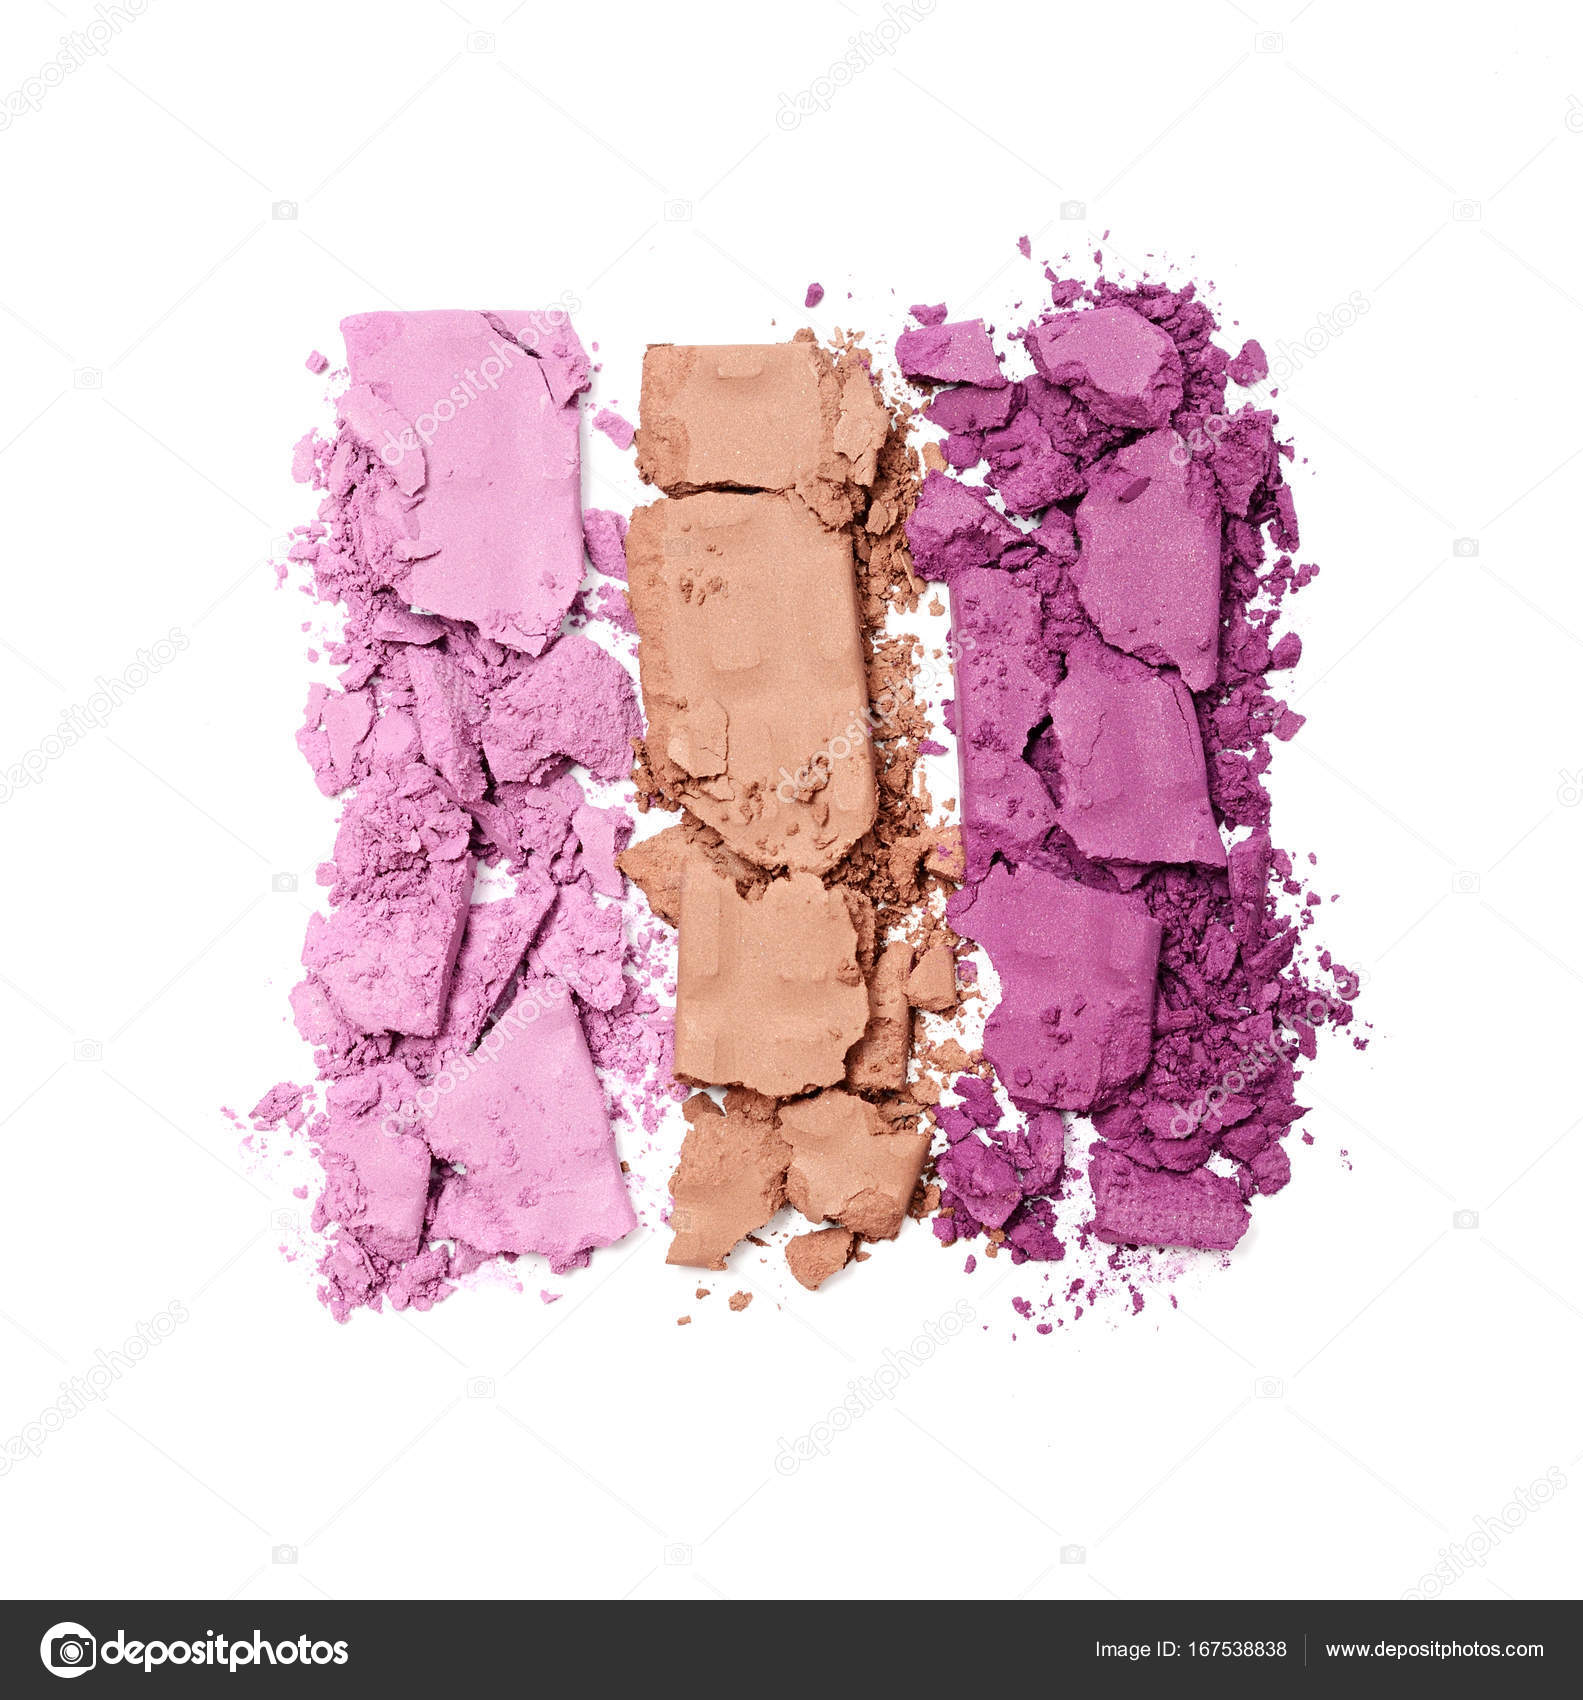 multicolored crushed eyeshadow for makeup as sample of cosmetic